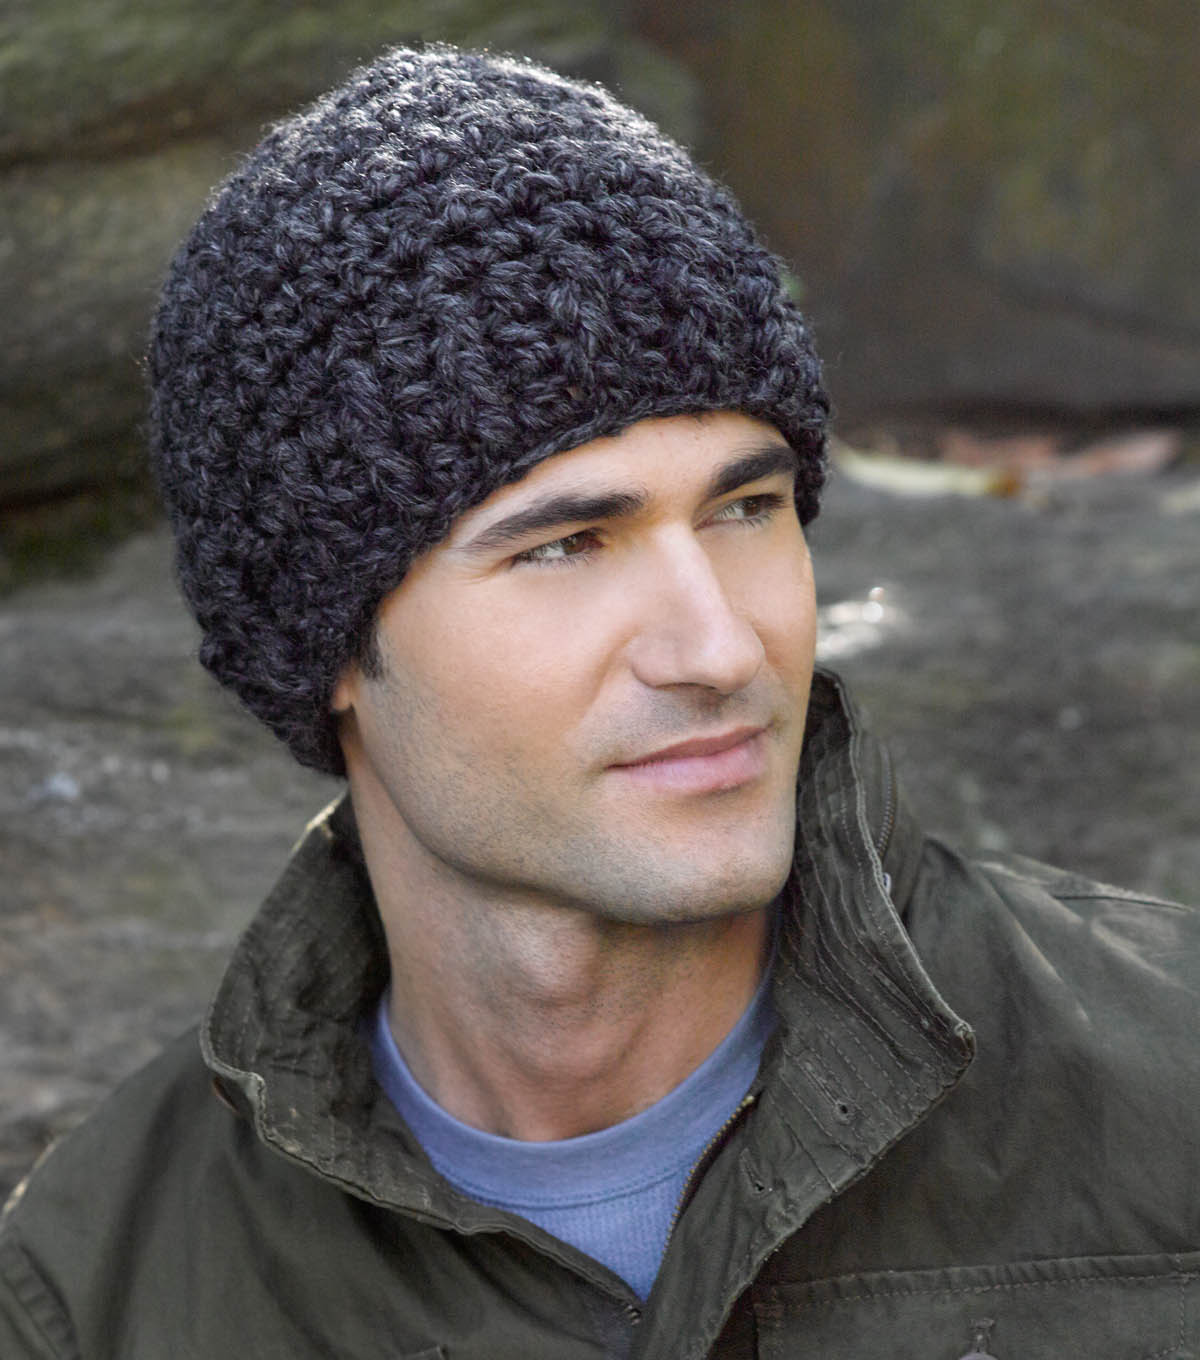 Husband-Approved Crochet Hats for Men - Sewrella 46d02b21afb